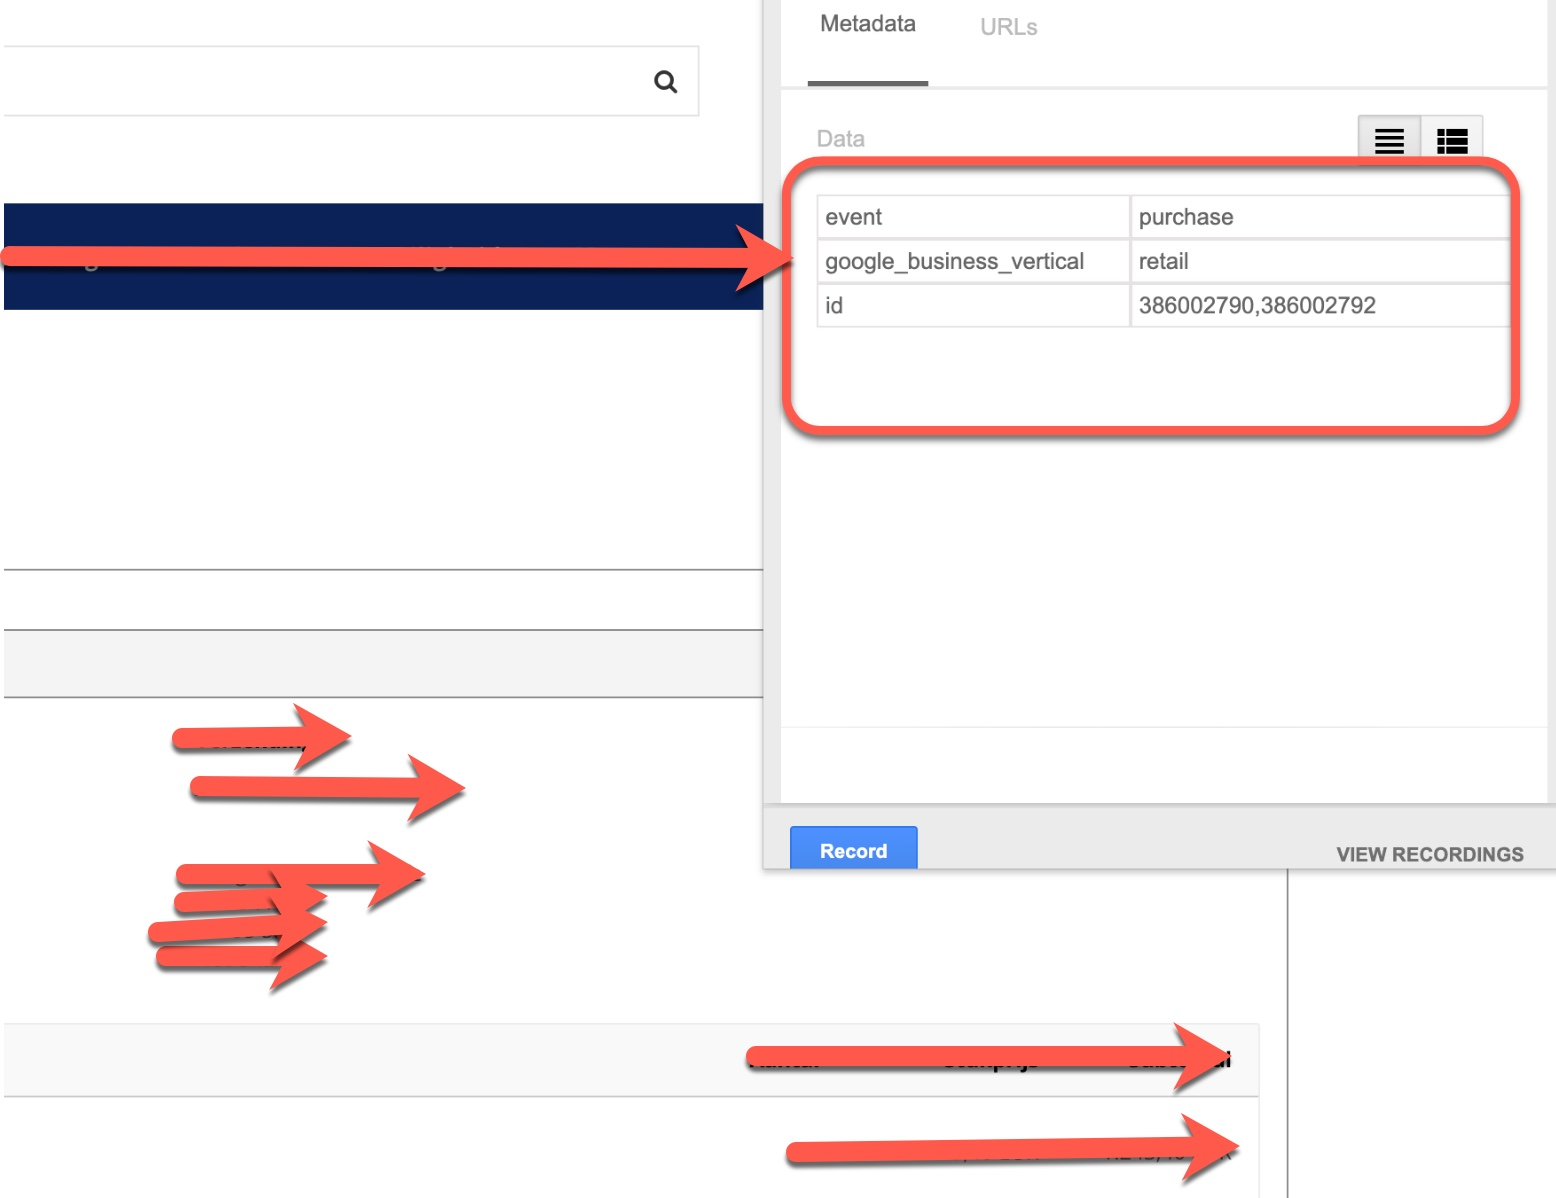 Dynamic Remarketing based on Events